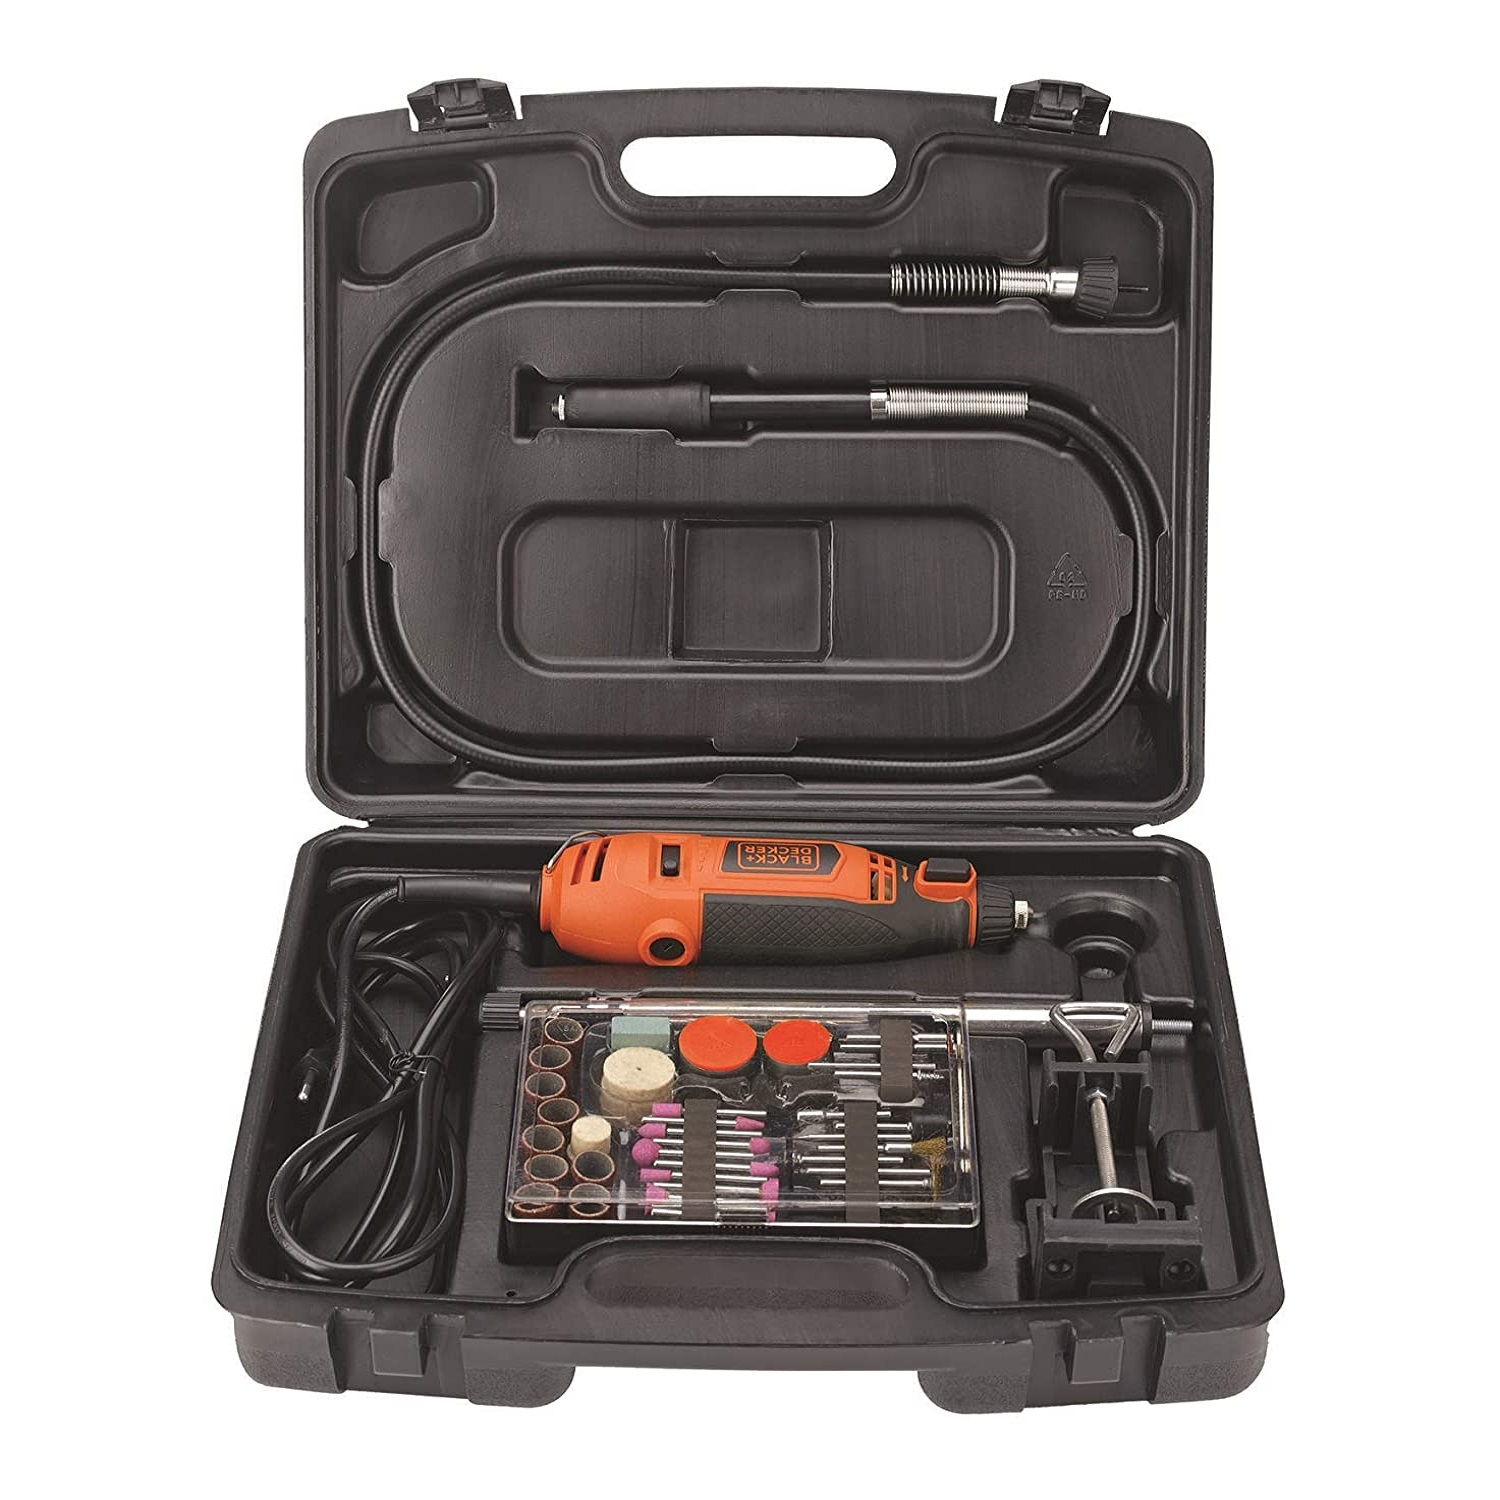 BLACK+DECKER RT18KA-IN 180W Electric Rotary Tool with 118 pc Acc. Kit Box for Grinding,Polishing,Engraving and Carving, RT18KA